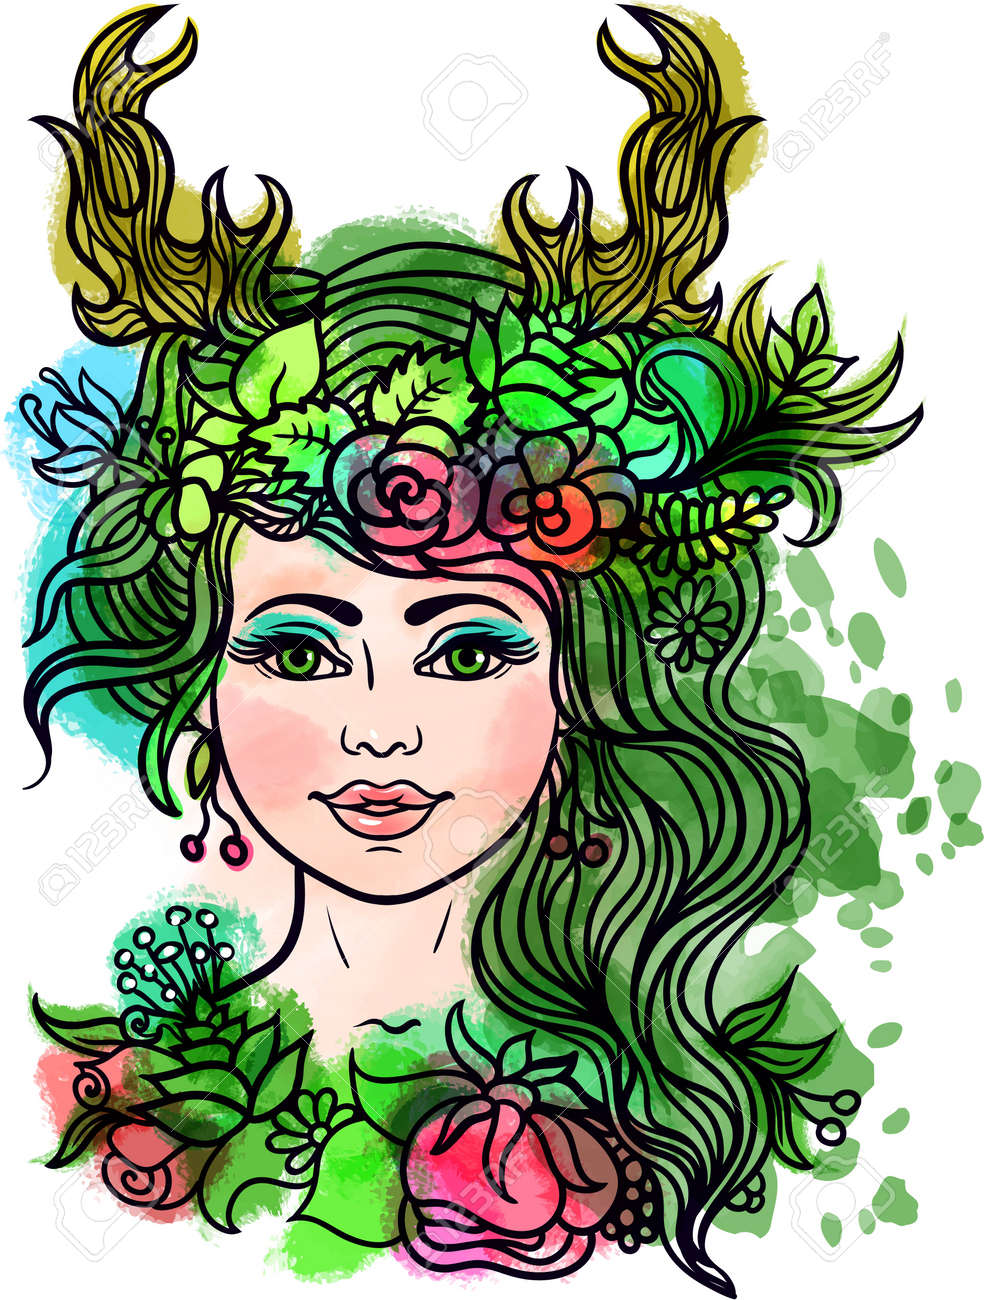 Goddess With Deer Horns.Forest Nymph With Wreath Of Flowers And ...